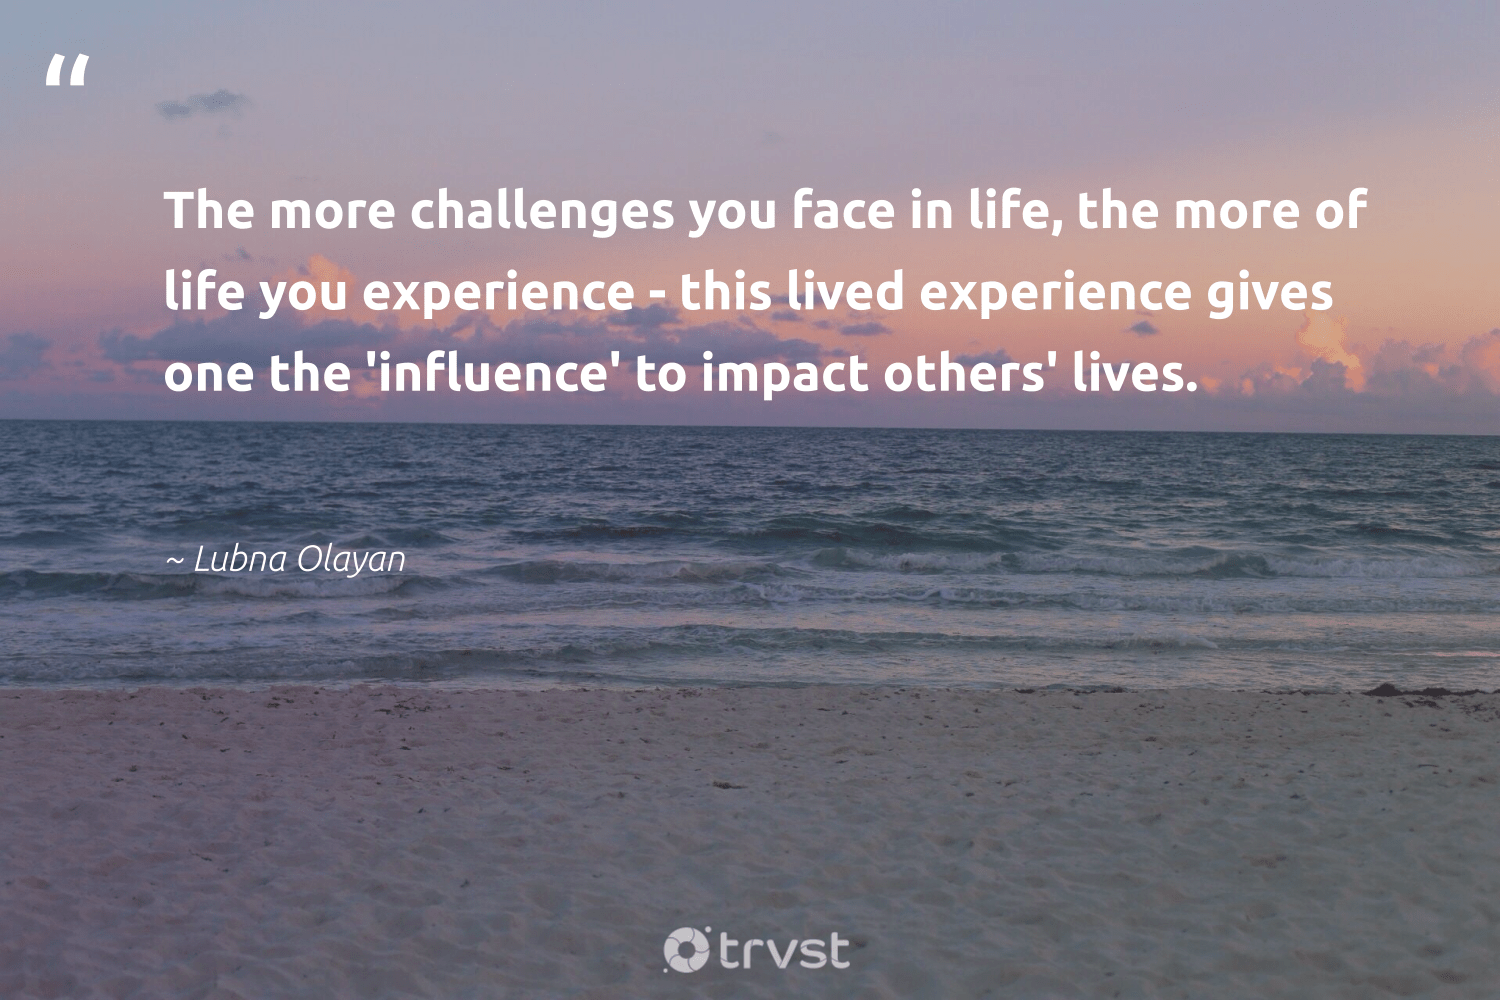 """""""The more challenges you face in life, the more of life you experience - this lived experience gives one the 'influence' to impact others' lives.""""  - Lubna Olayan #trvst #quotes #impact #influence #socialchange #gogreen #betterplanet #bethechange #ethicalbusiness #dogood #weareallone #takeaction"""